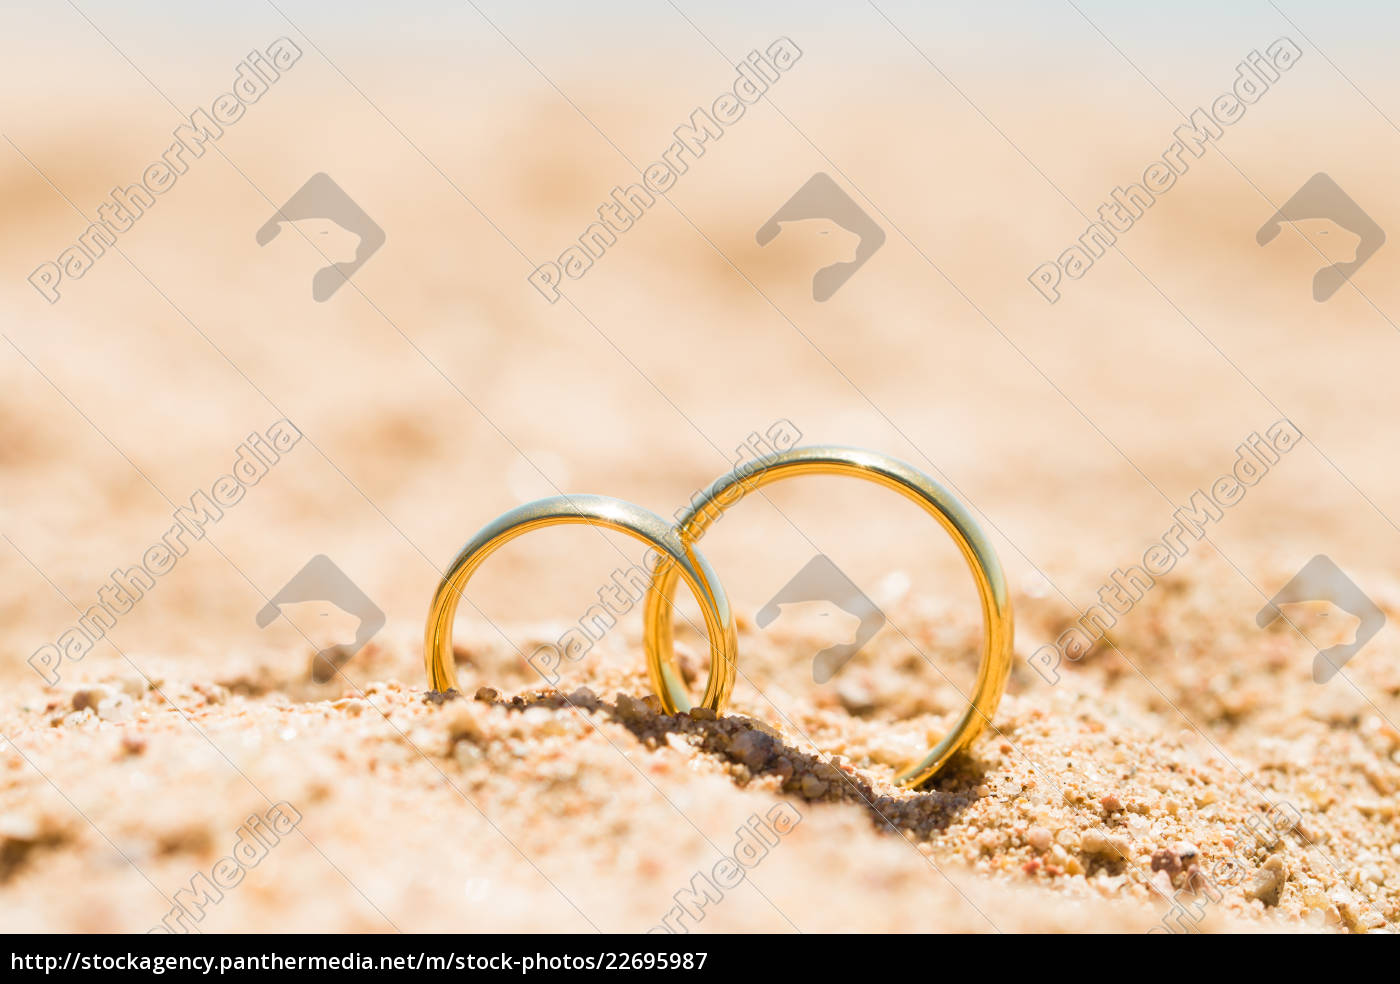 two, golden, rings, in, sand - 22695987